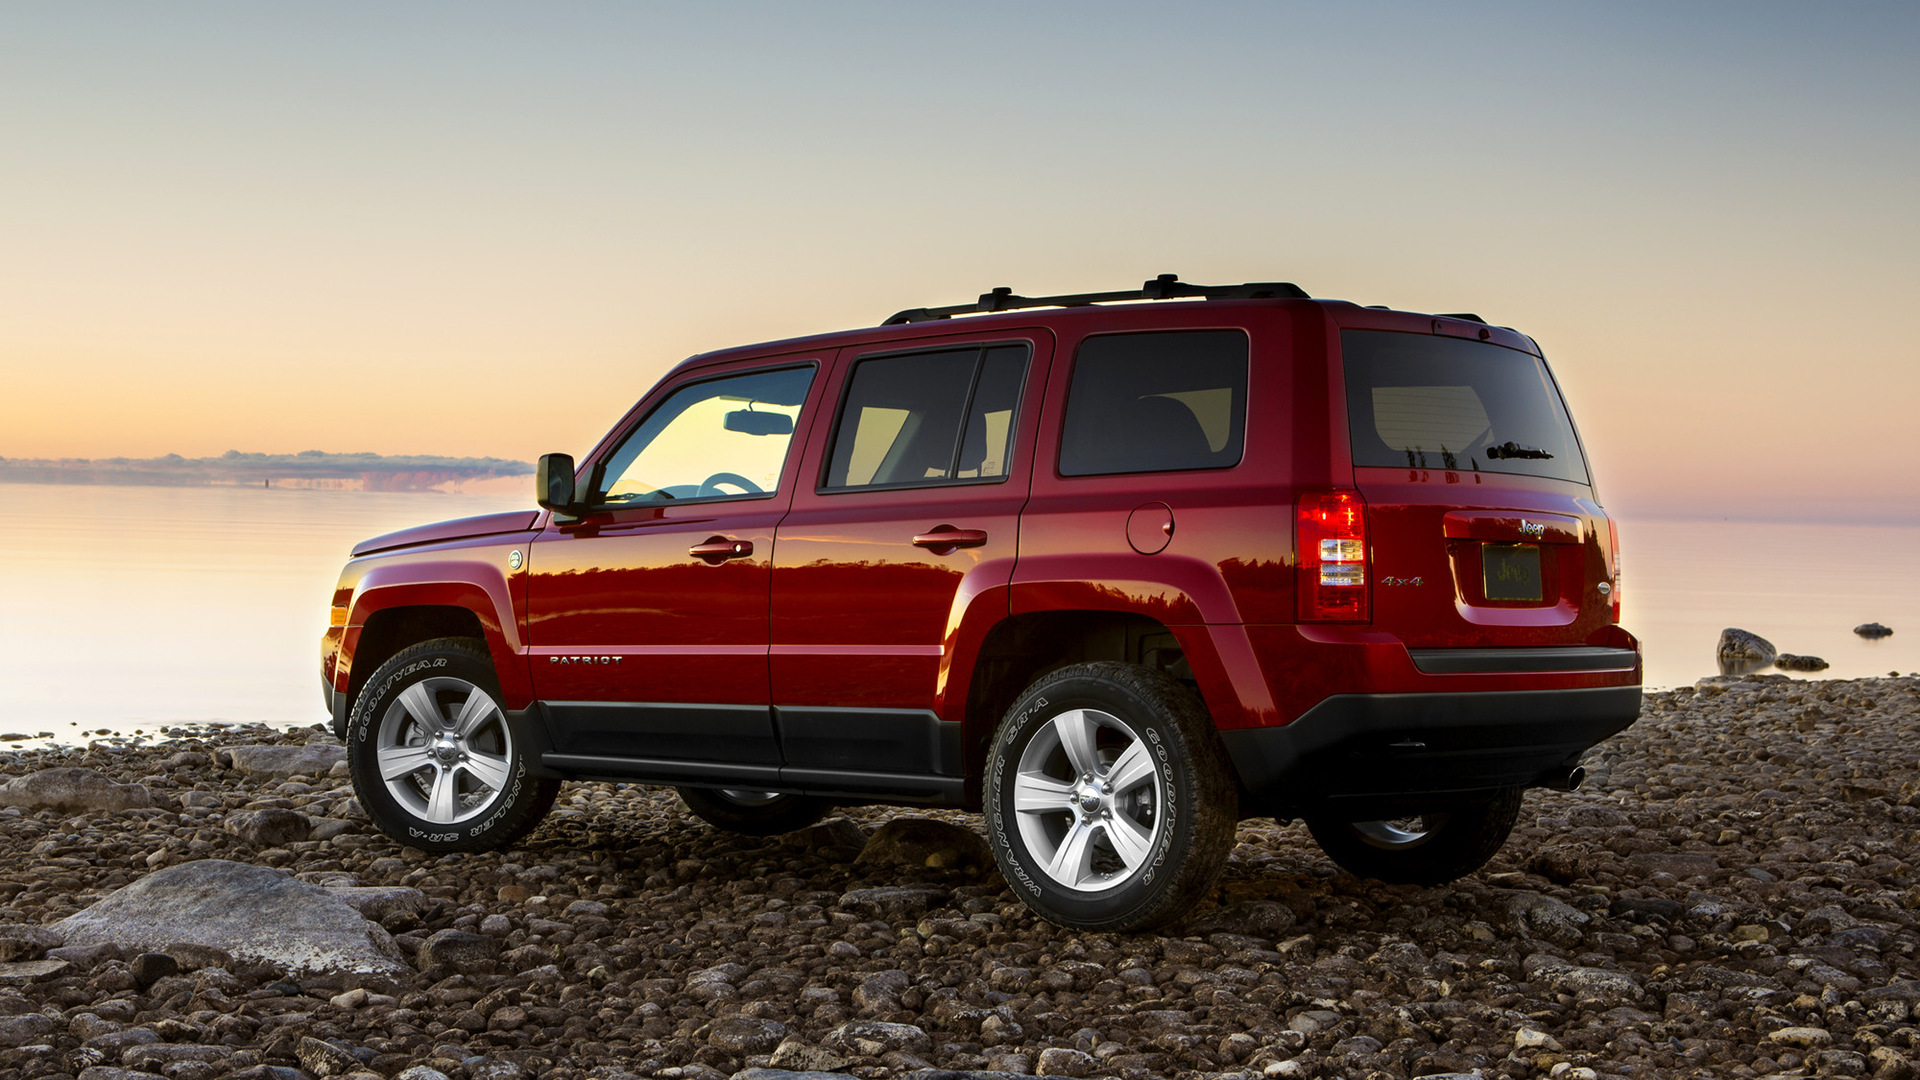 2010 Jeep Patriot - Wallpapers and HD Images | Car Pixel